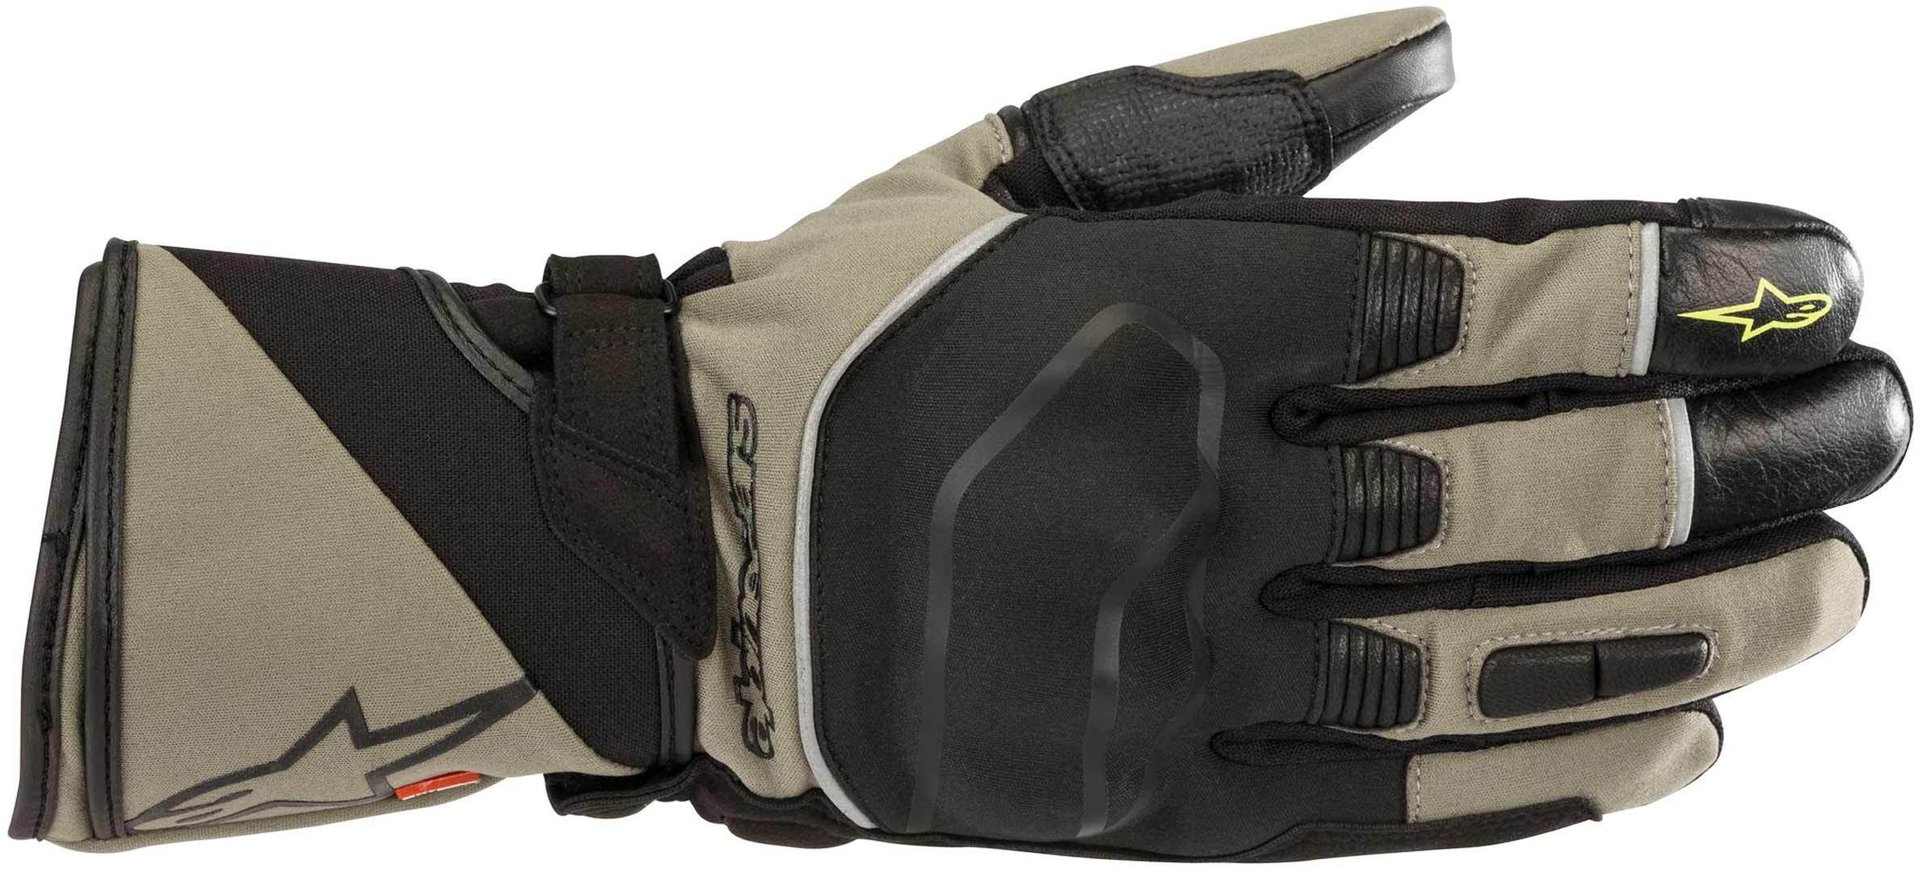 Alpinestars Andes Touring Outdry Handschuhe, schwarz-grün, Größe 3XL, schwarz-grün, Größe 3XL RC Modellbau